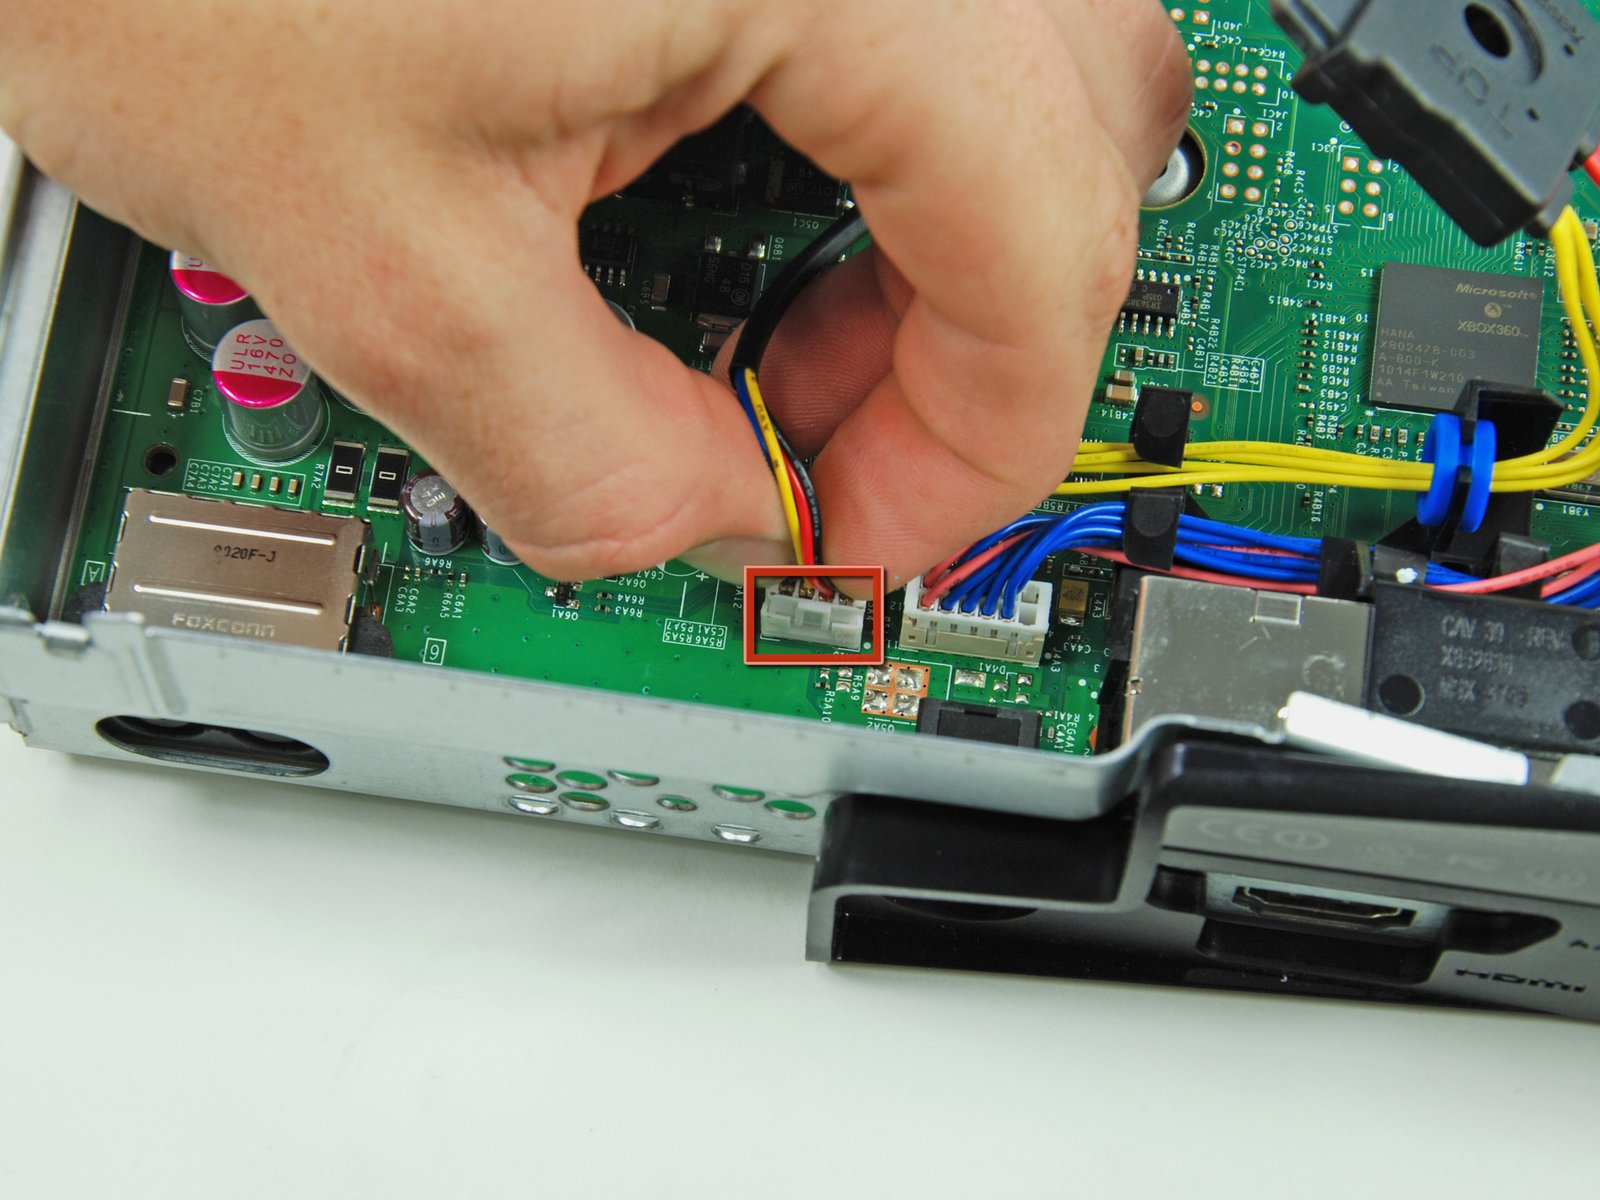 WRG-8579] Motherboard For Xbox 360 Power Supply Wiring Diagram